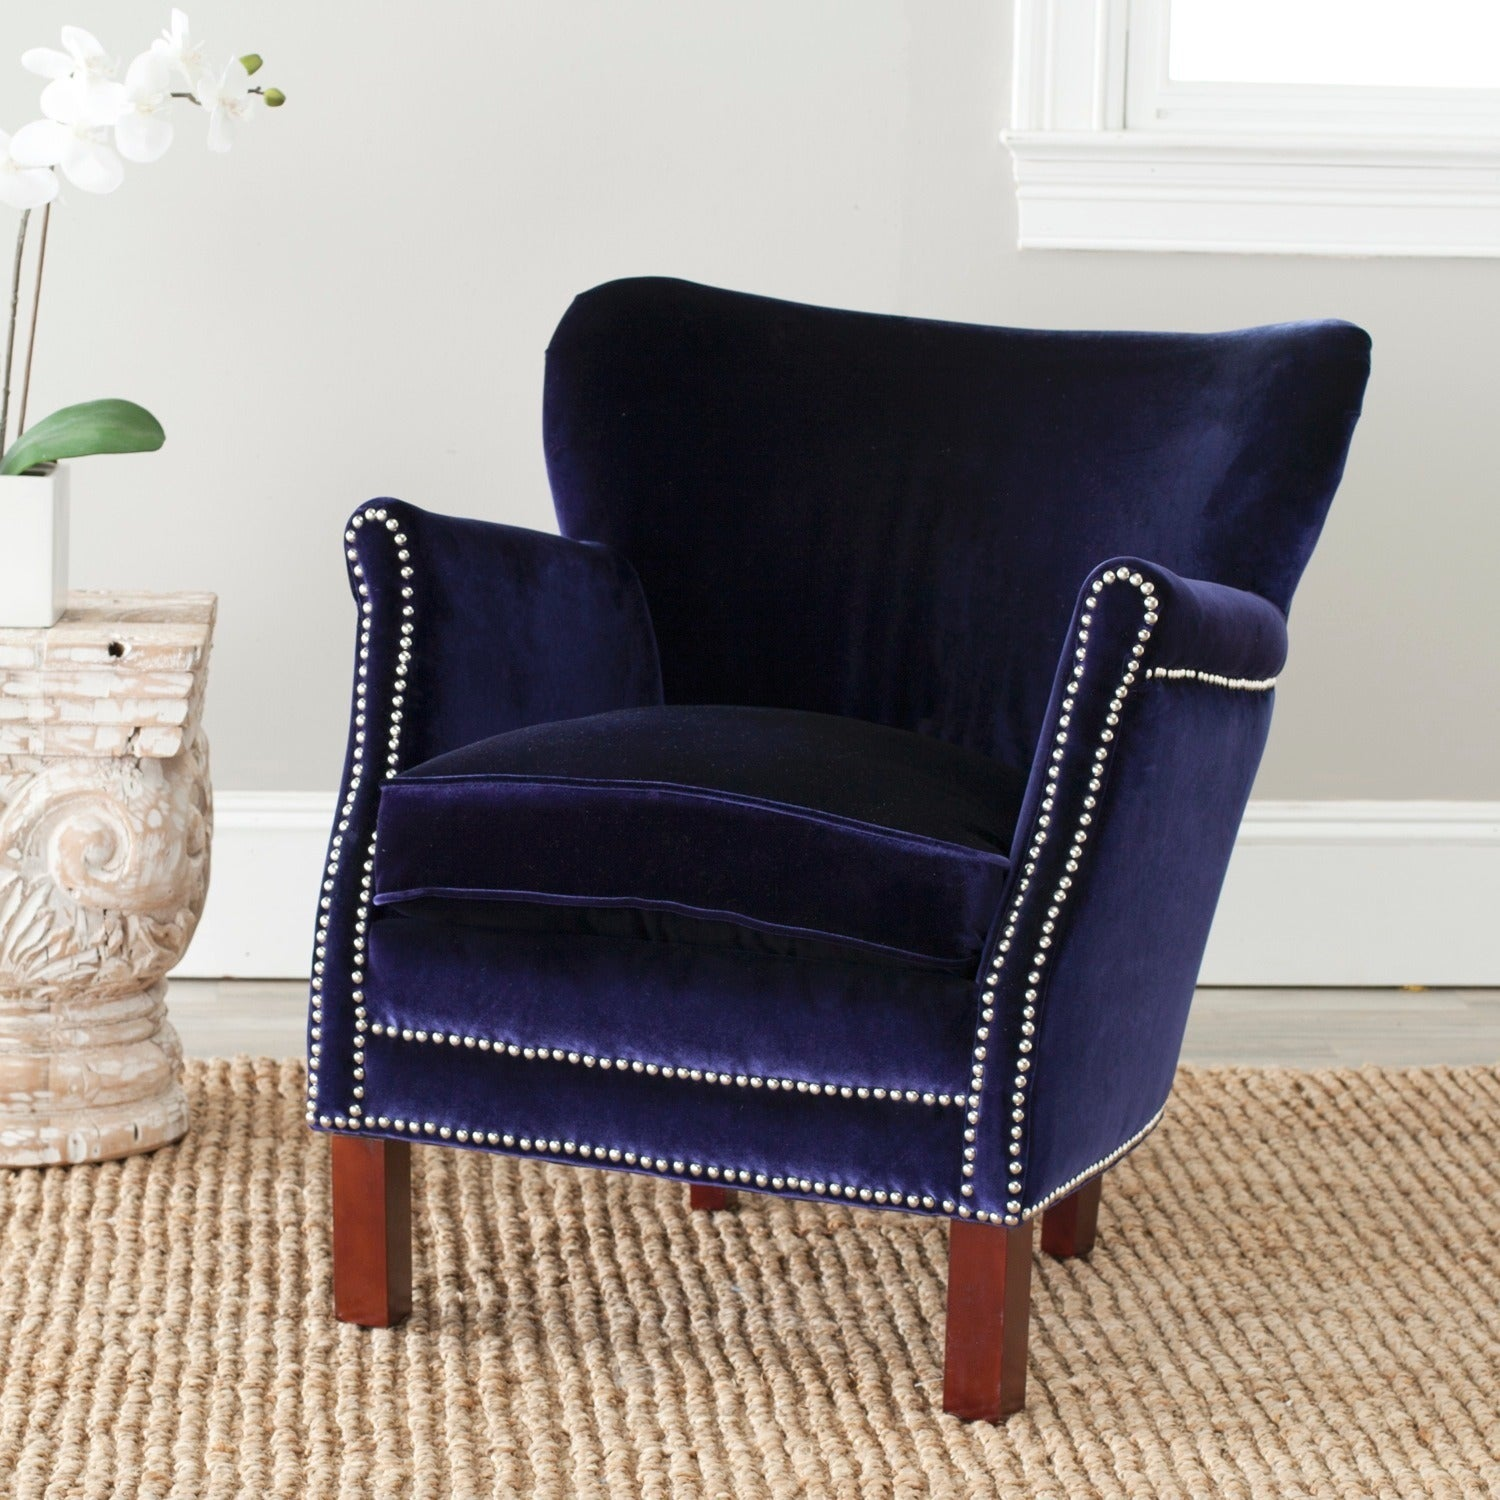 Safavieh Posh Royal Blue Arm Chair   Free Shipping Today   Overstock    14000629